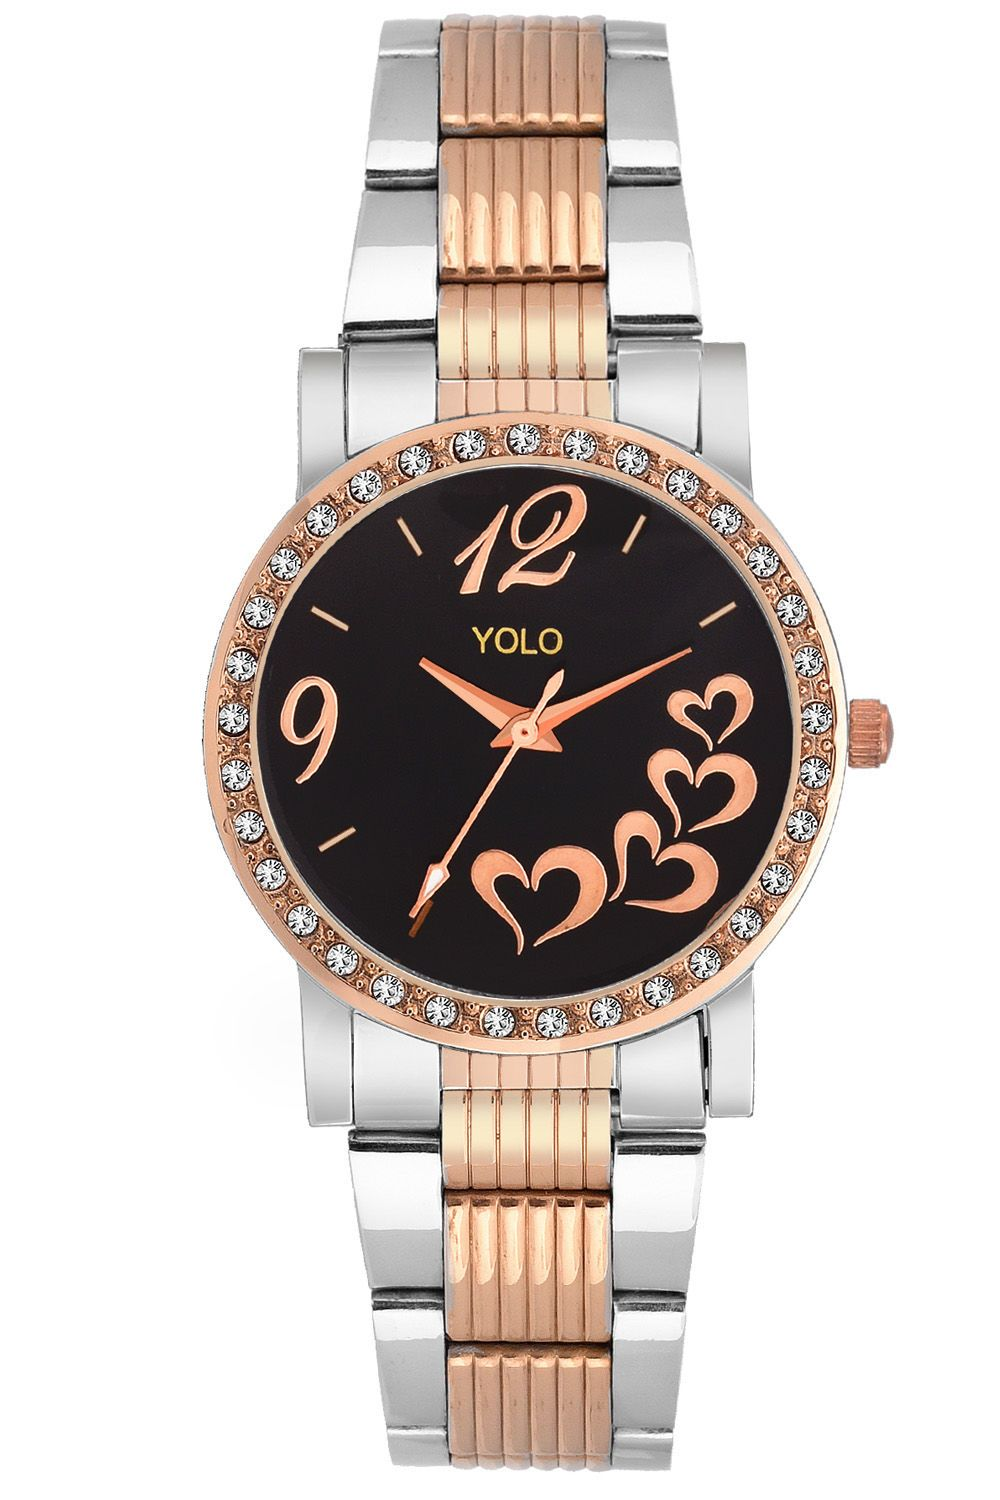 YOLO Women's Black Dial Analog Wrist Watch with Rosegold Metal Strap Is A Unique And Innovative Product In The Wrist Watches Market. This Amazing, Stylish Fashion Watch Has Arrived To Complement Your Look And Attitude.